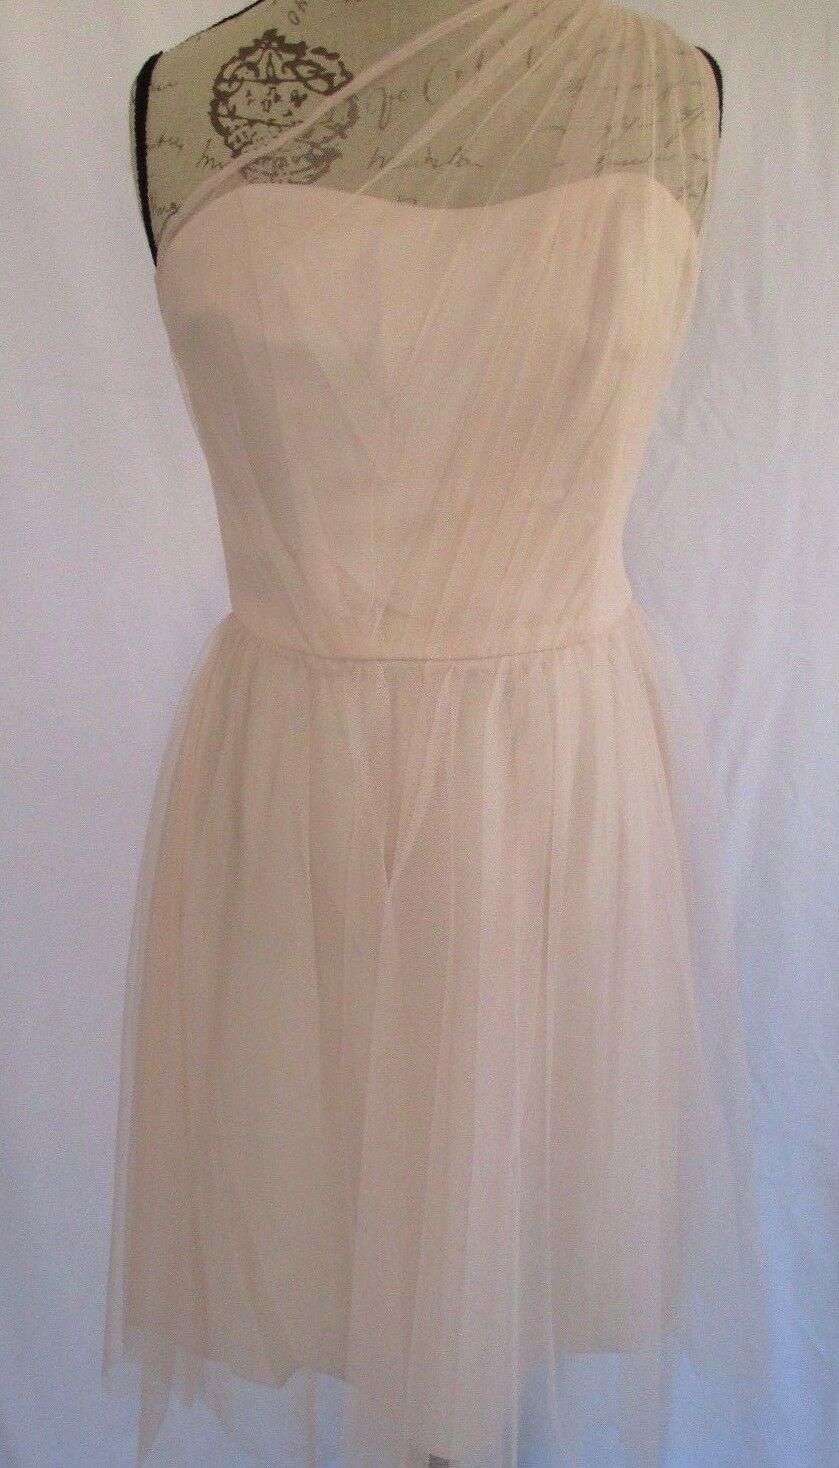 New High-end Dress by Gather and Gown(Prom, Party, Wedding or Evening Gown) sz10